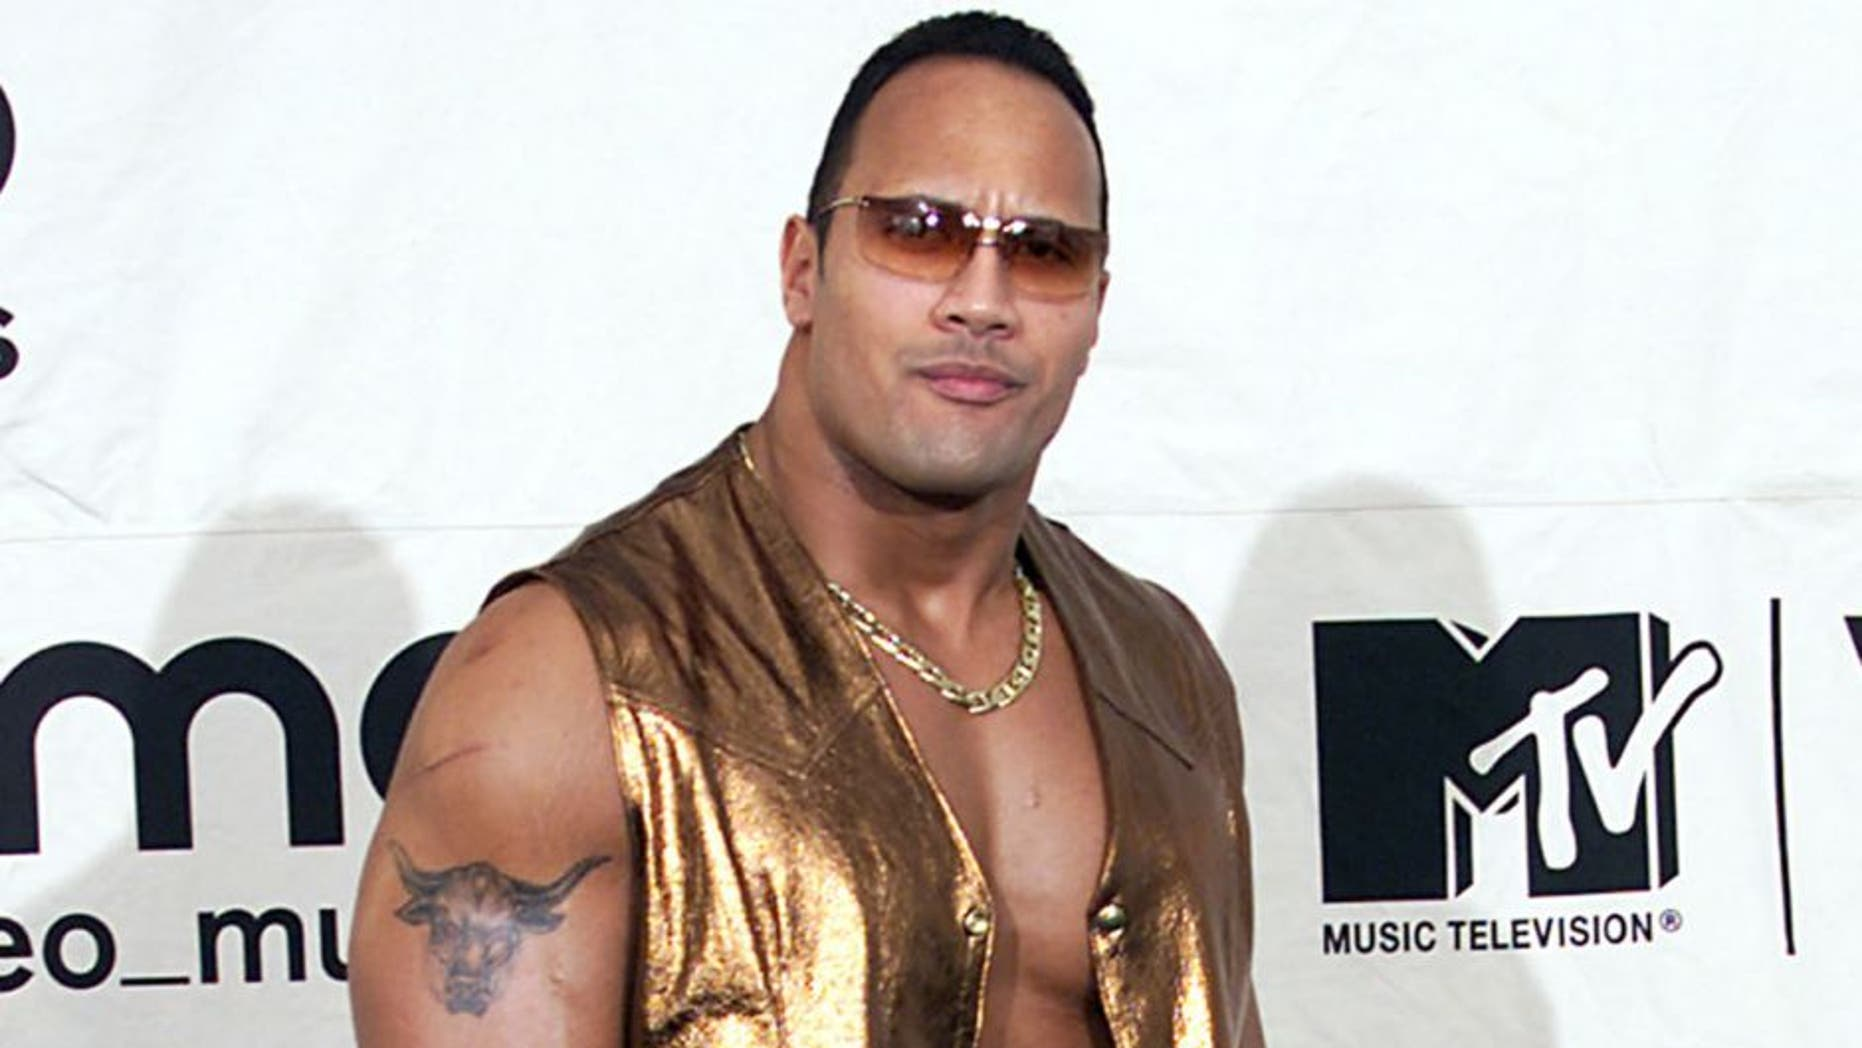 The Rock at MTV Video Music Awards 2000 held at Radio City Music Hall September 7, 2000 Photo byNick Elgar/ImageDirect